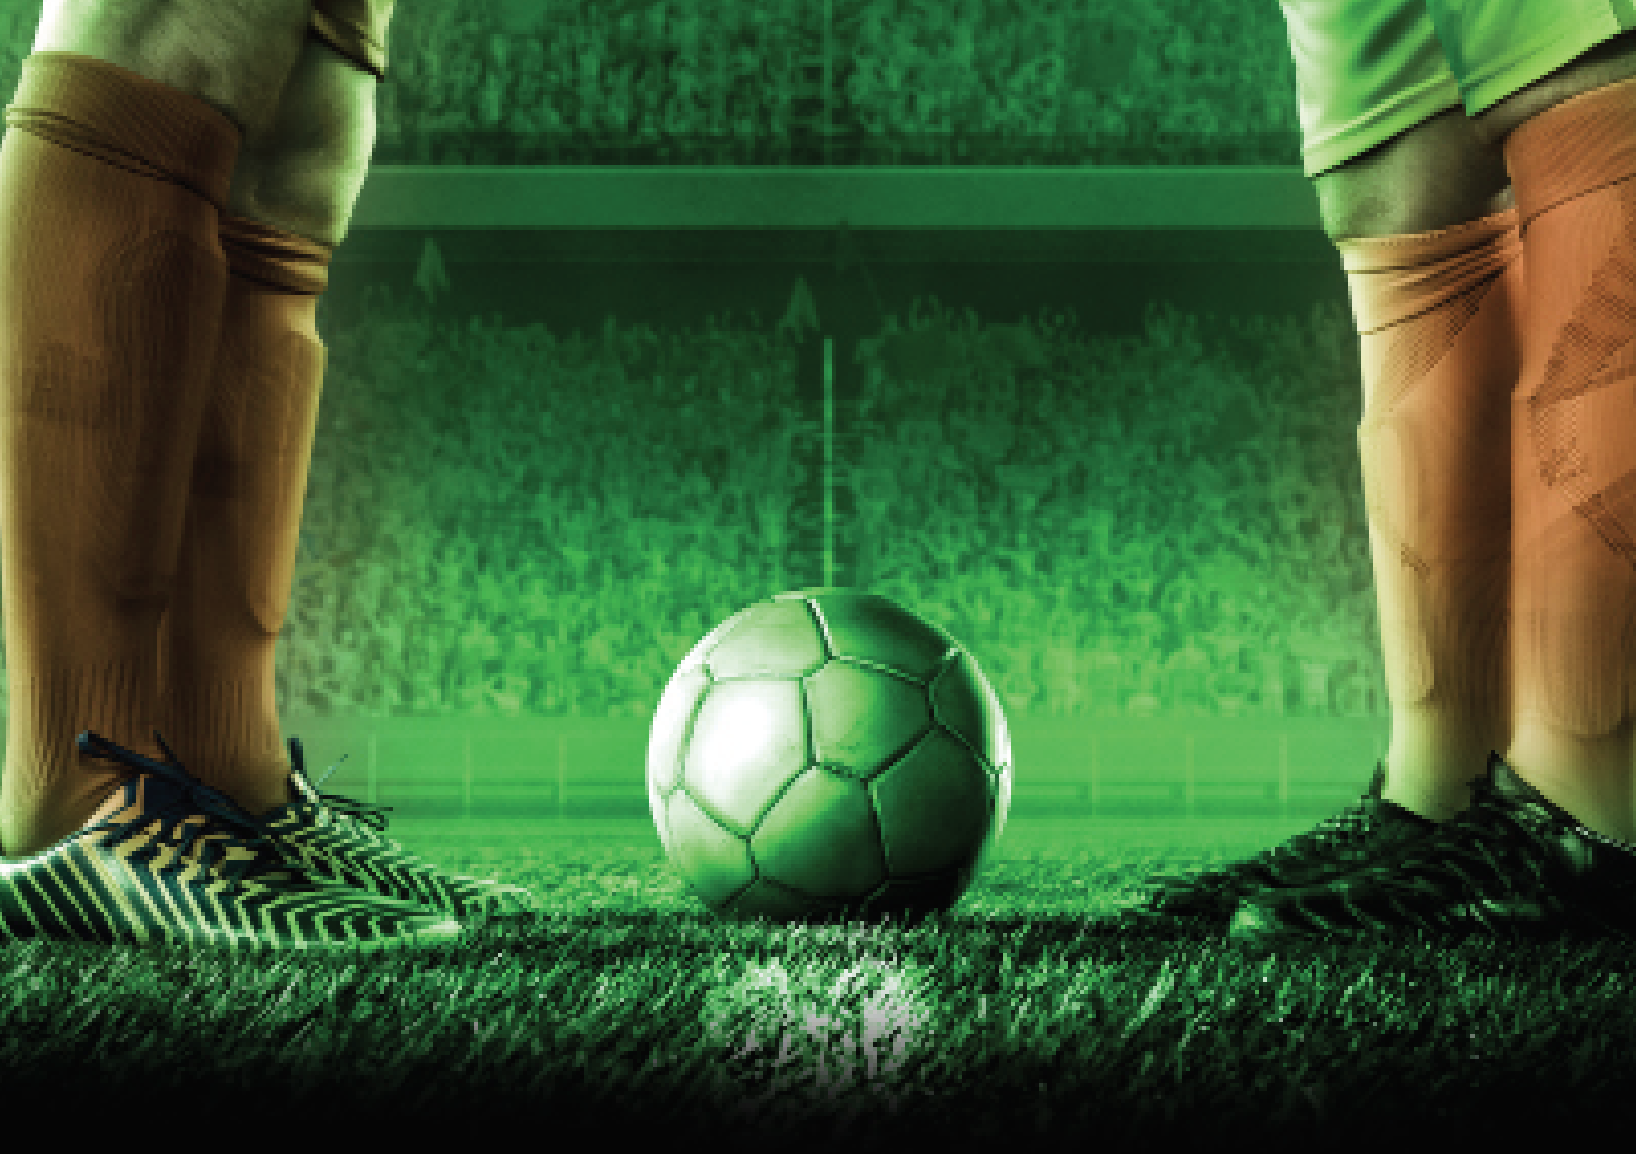 football beyond booundaries - the spark youth empowerment platforms in nigeria